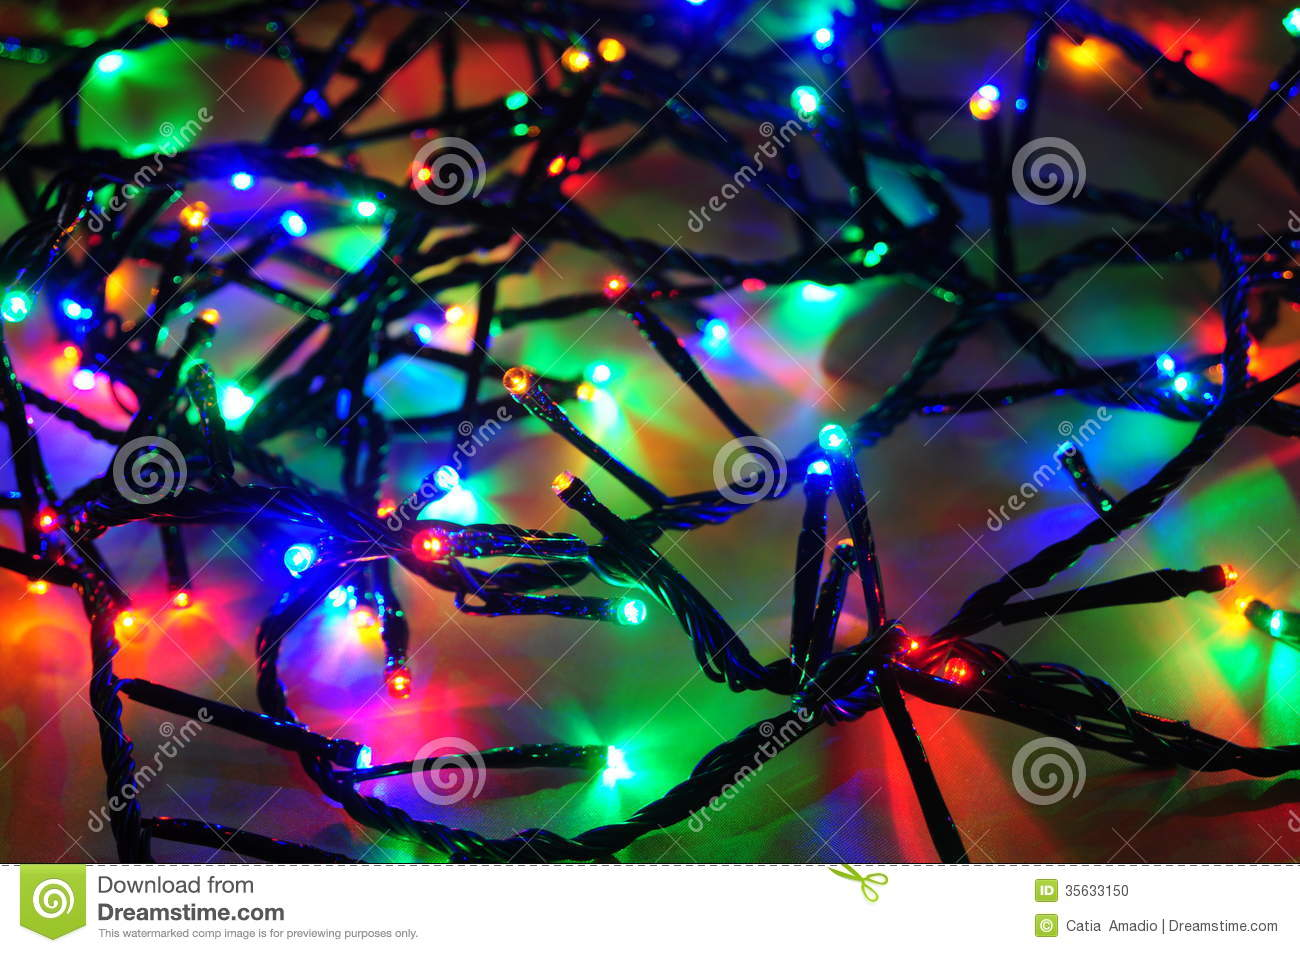 download christmas lights wire stock photo image of lights electric 35633150